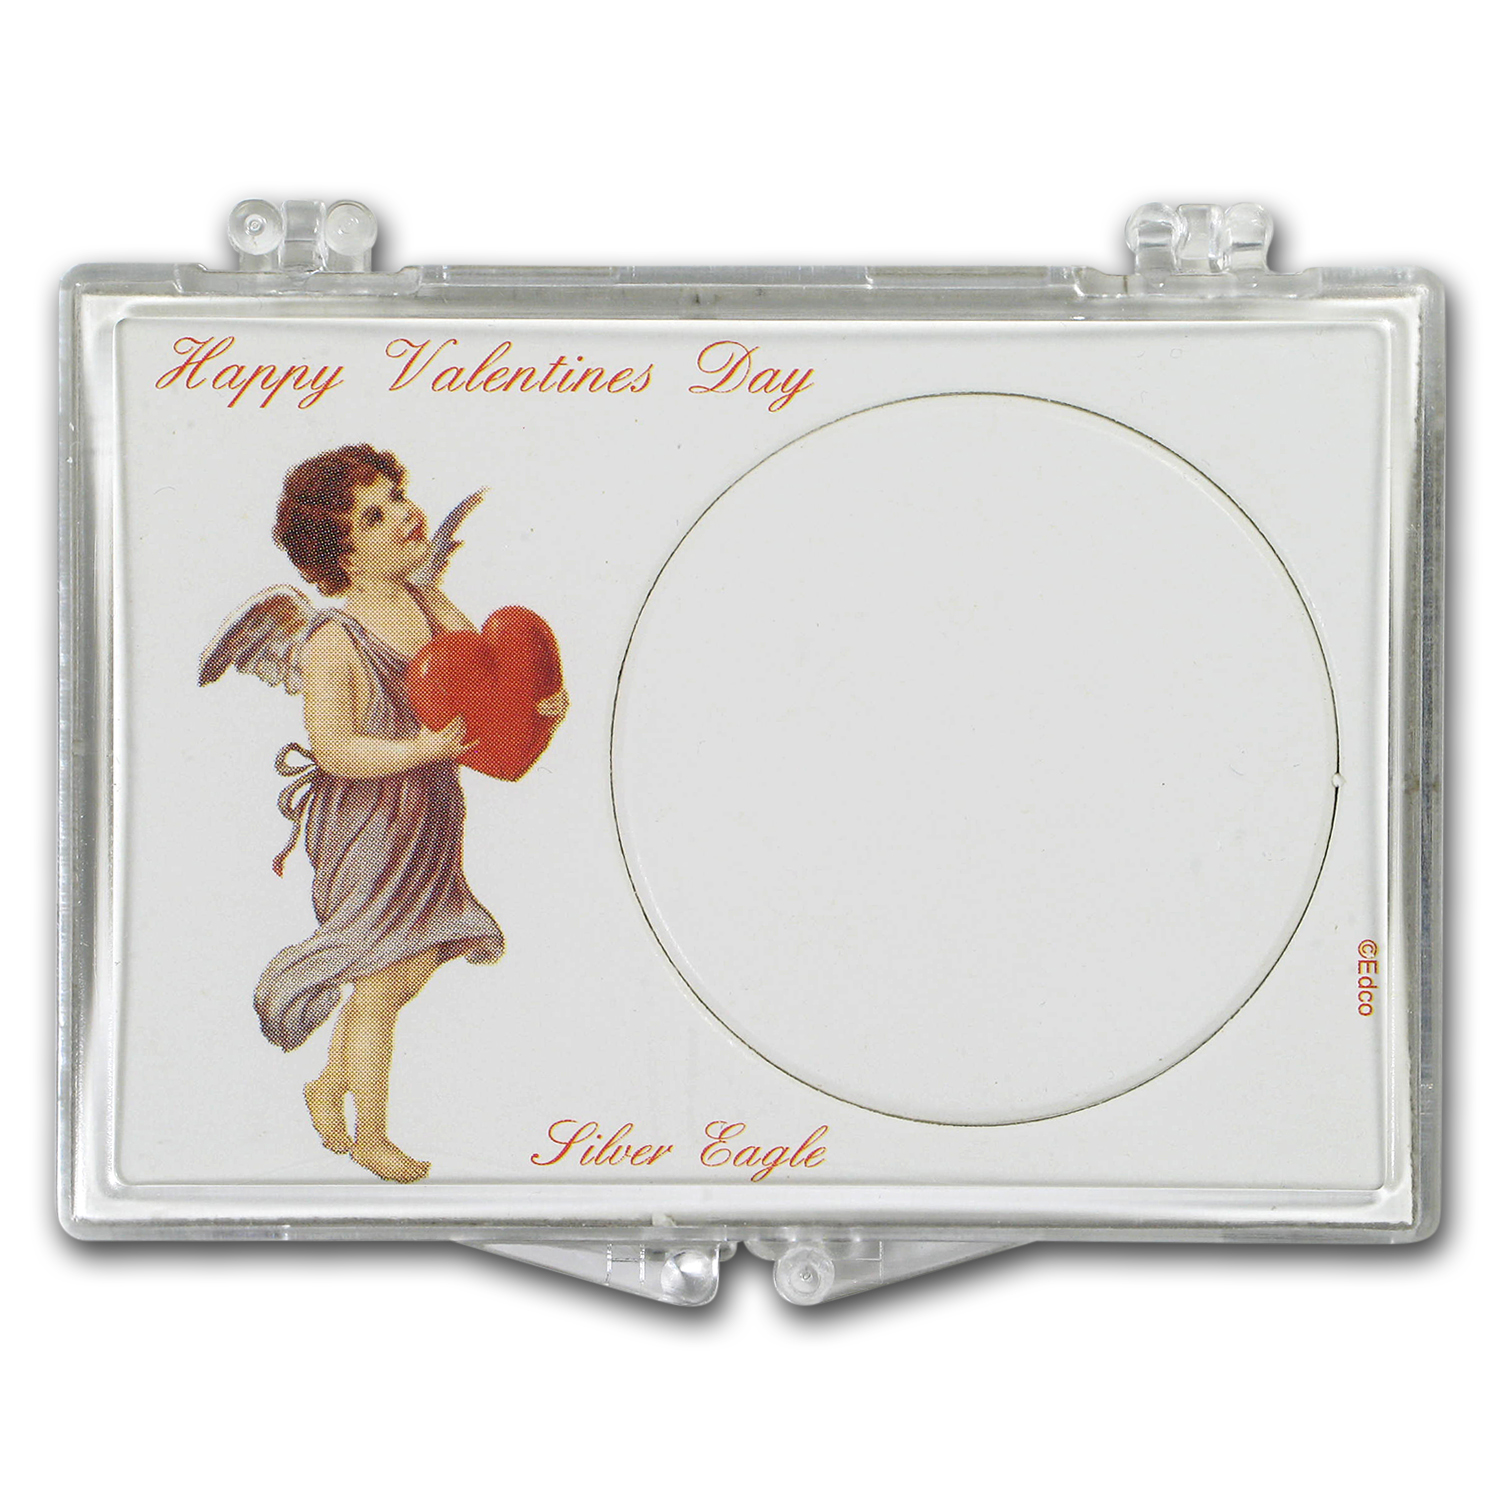 Snap-Lock Holder - Happy Valentine's Day (Silver Eagle)